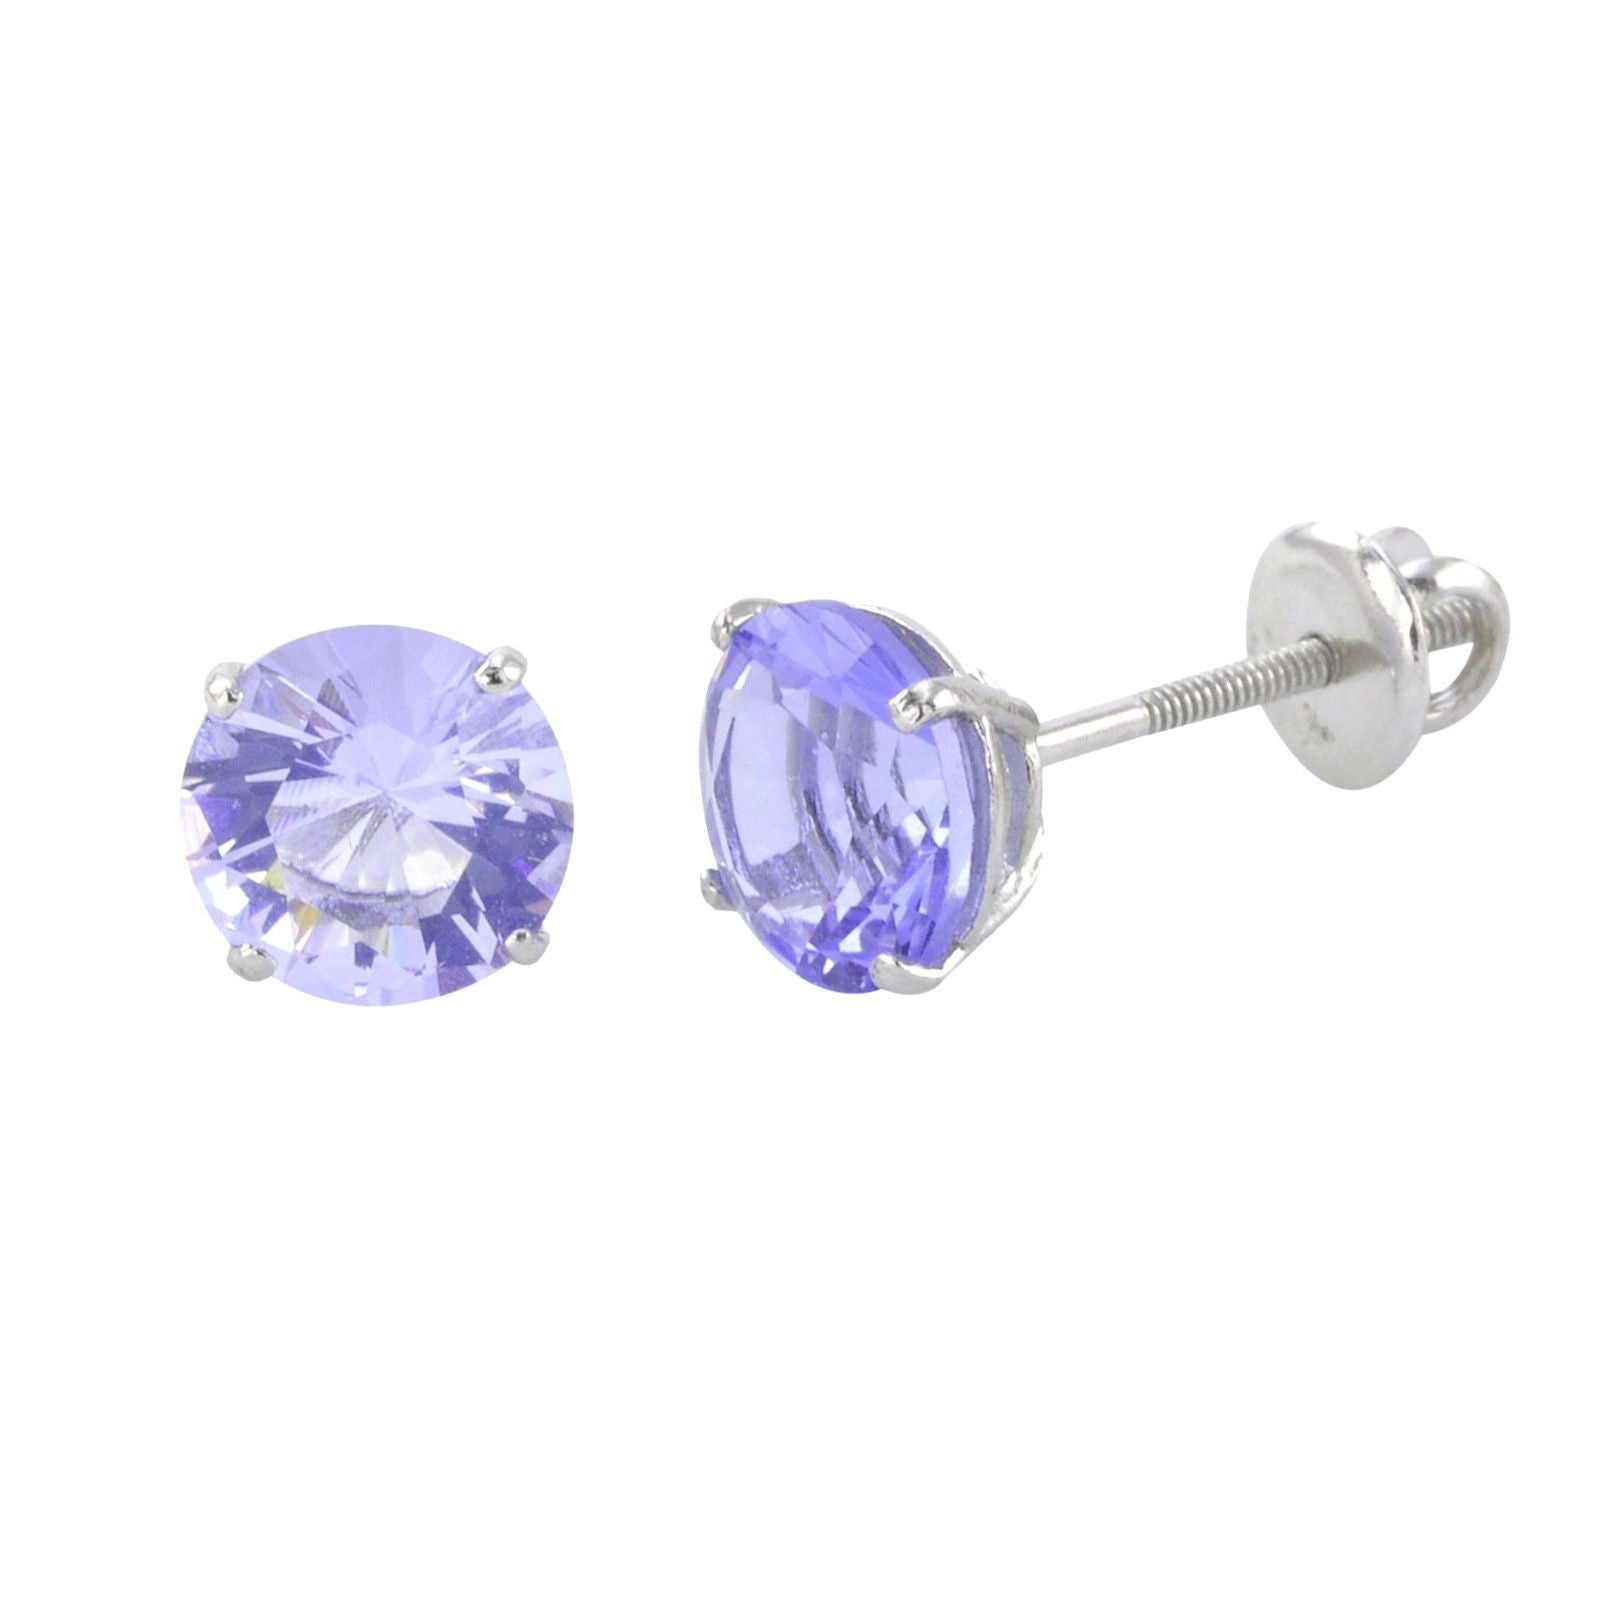 .003 cttw. Solid 925 Sterling Silver Violet Purple February Simulated Birthstone Simulated Amethyst /& Pink Quartz /& Diamond Pendant 14mm x 14mm